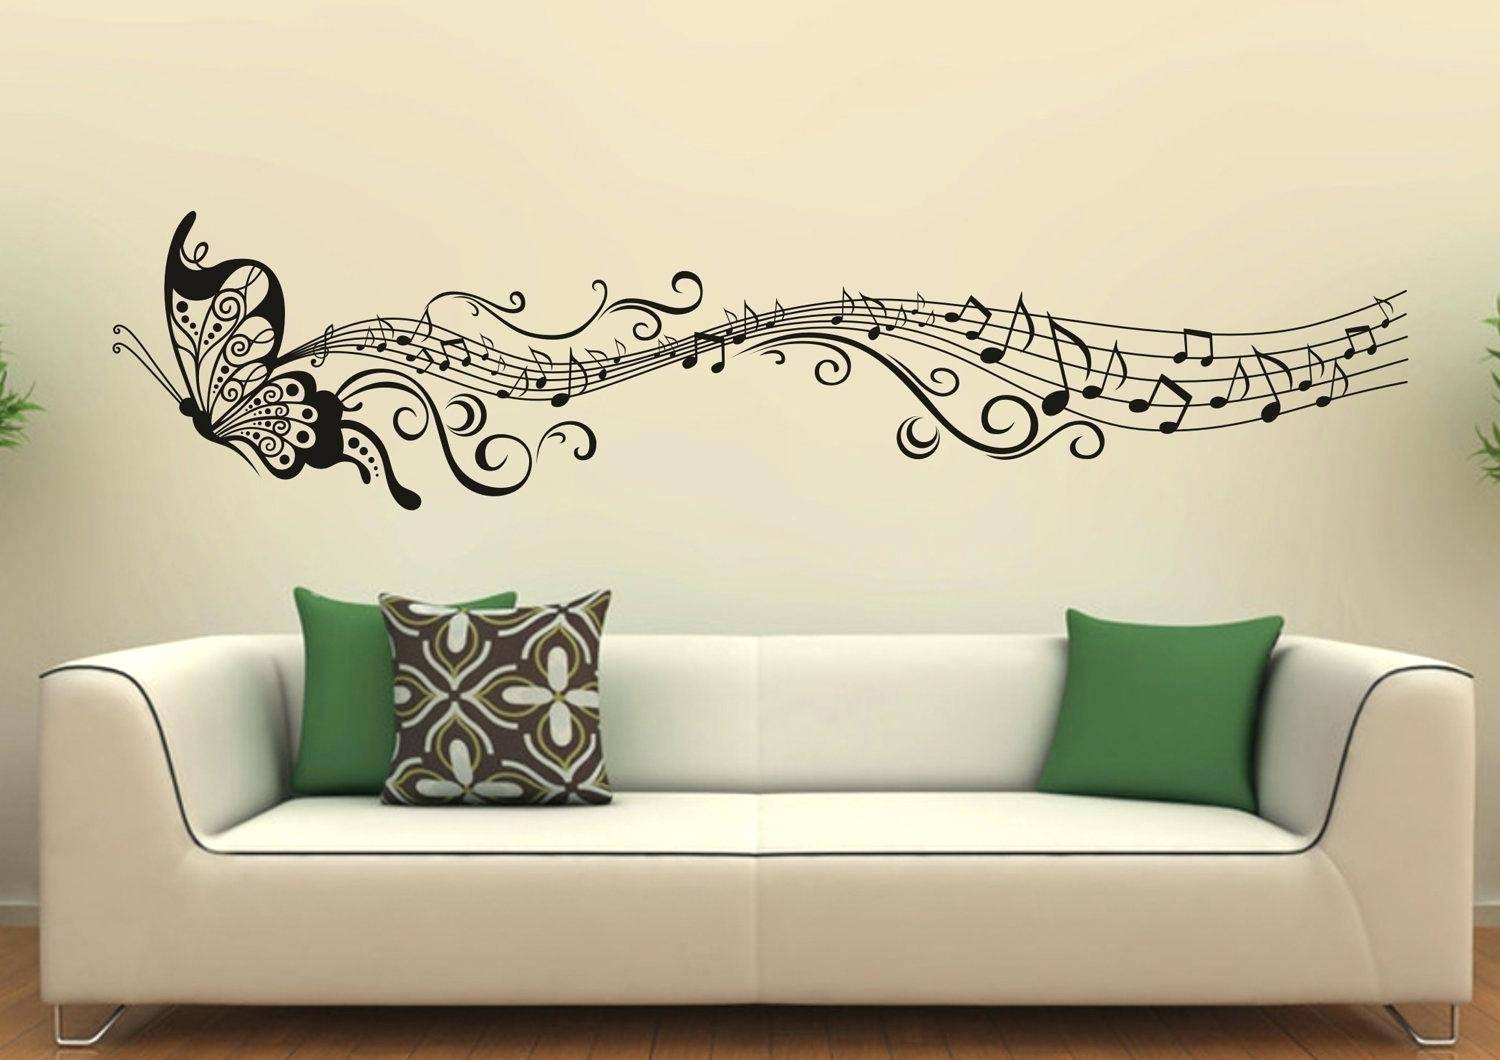 Wall Decor: Fascinating Music Themed Wall Decor Design (View 11 of 25)